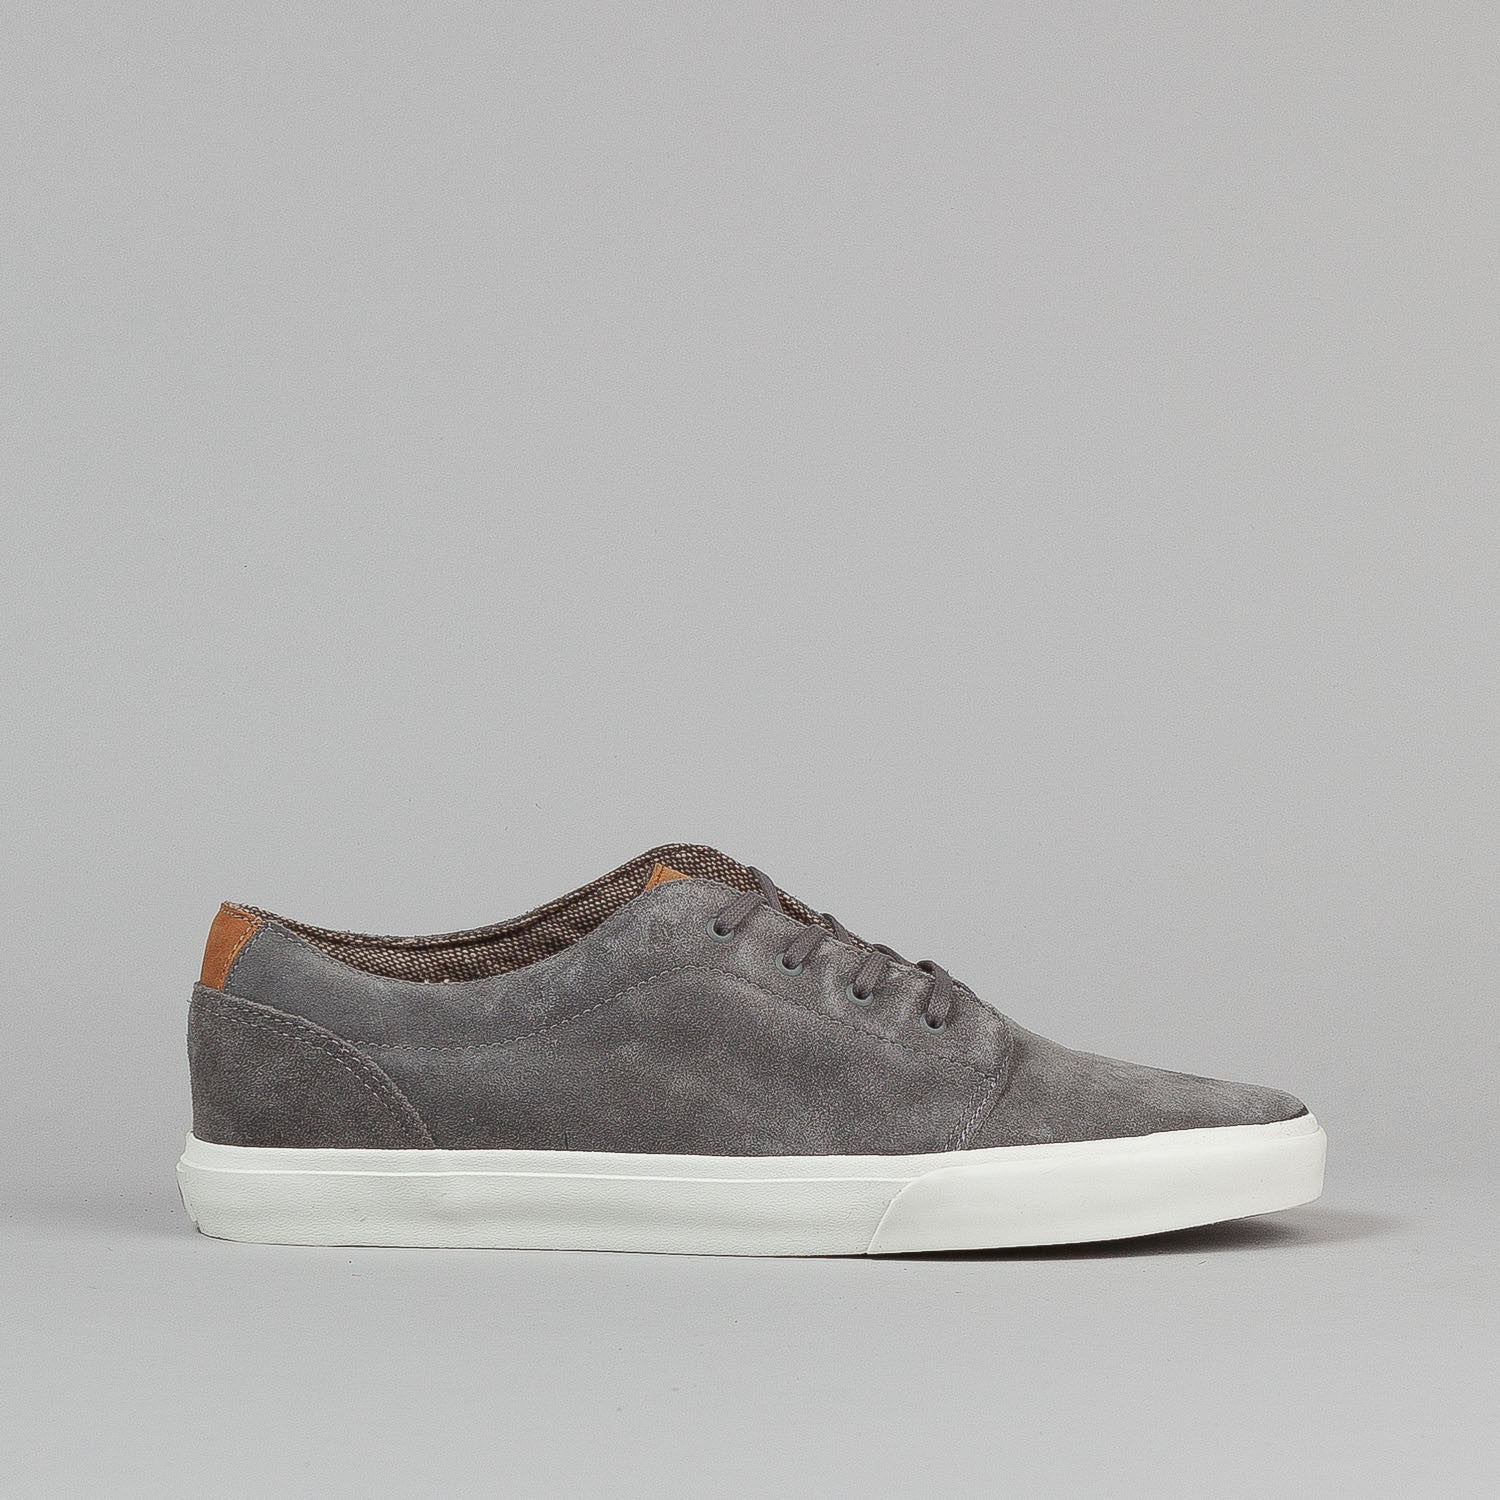 Vans 106 Vulc CA Shoes